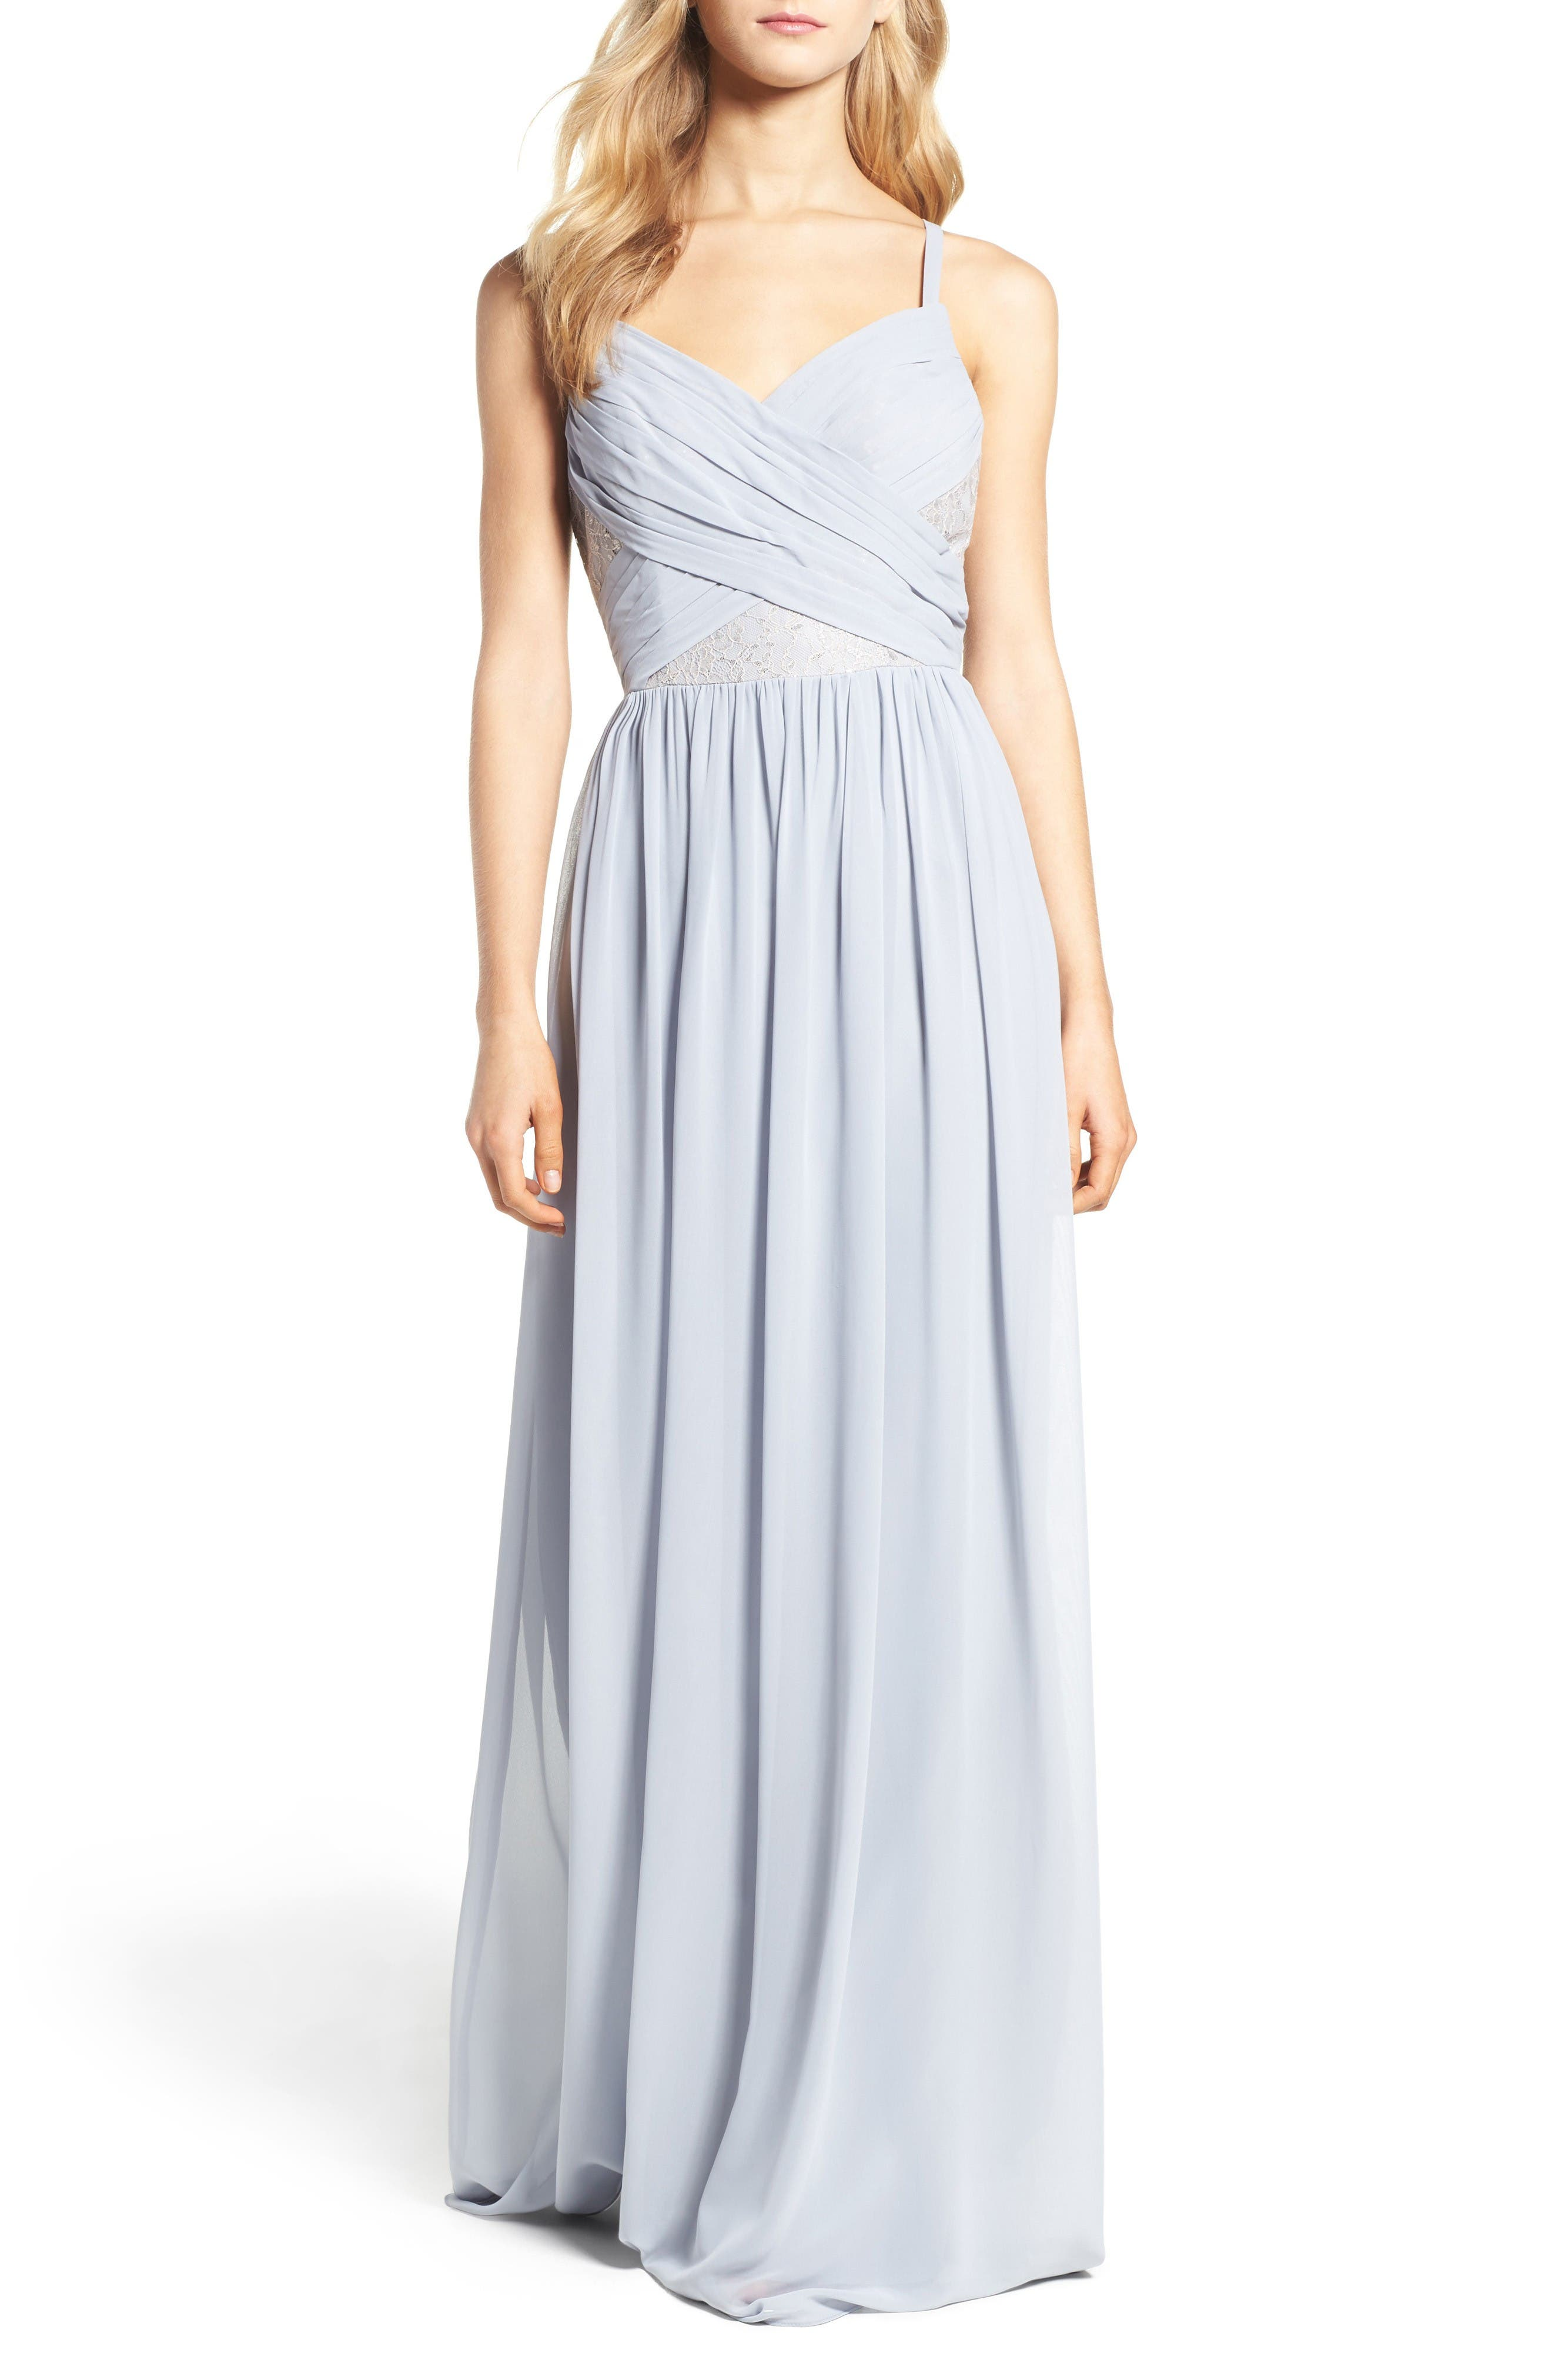 Hayley Paige Occasions Sleeveless Chiffon Gown